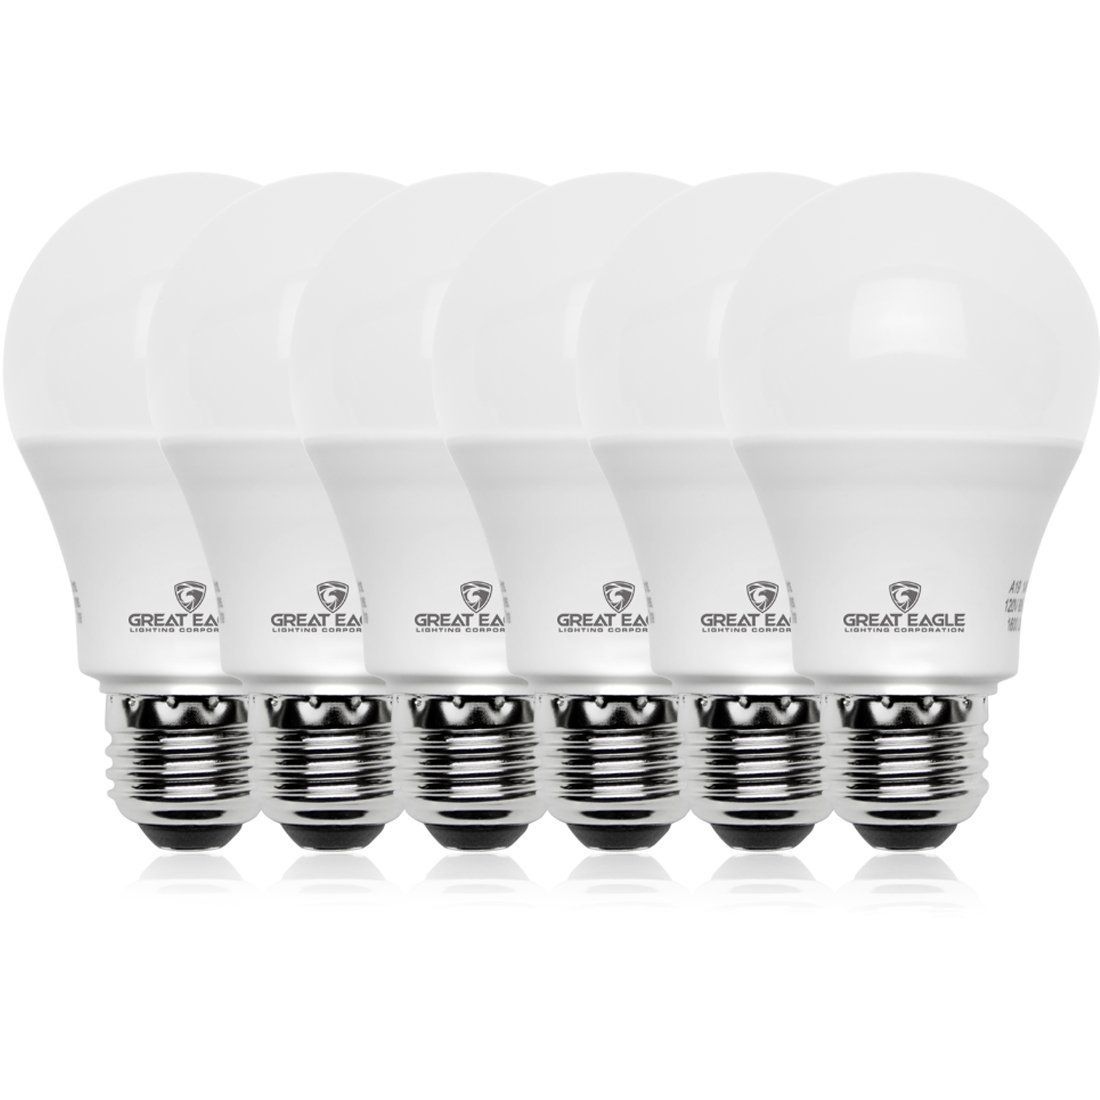 Great Eagle 100w Equivalent Led Light Bulb 1550 Lumens A19 Bright White 3000k Dimmable 14watt Ul Listed 6pack Click Image For Light Bulb Led Light Bulb Bulb